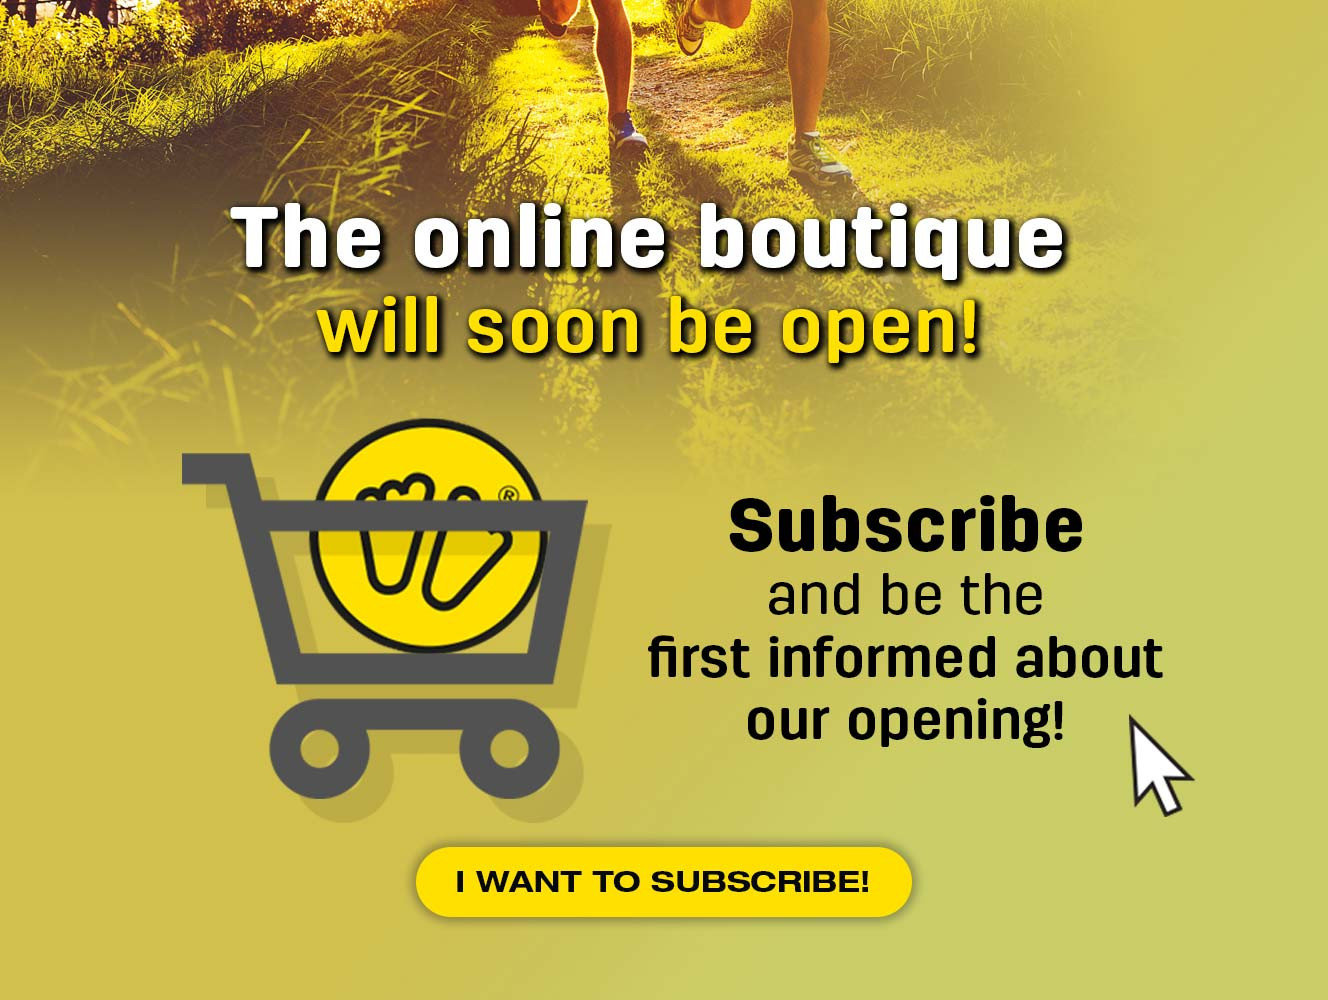 Subscribe and be the first informed about our opening!